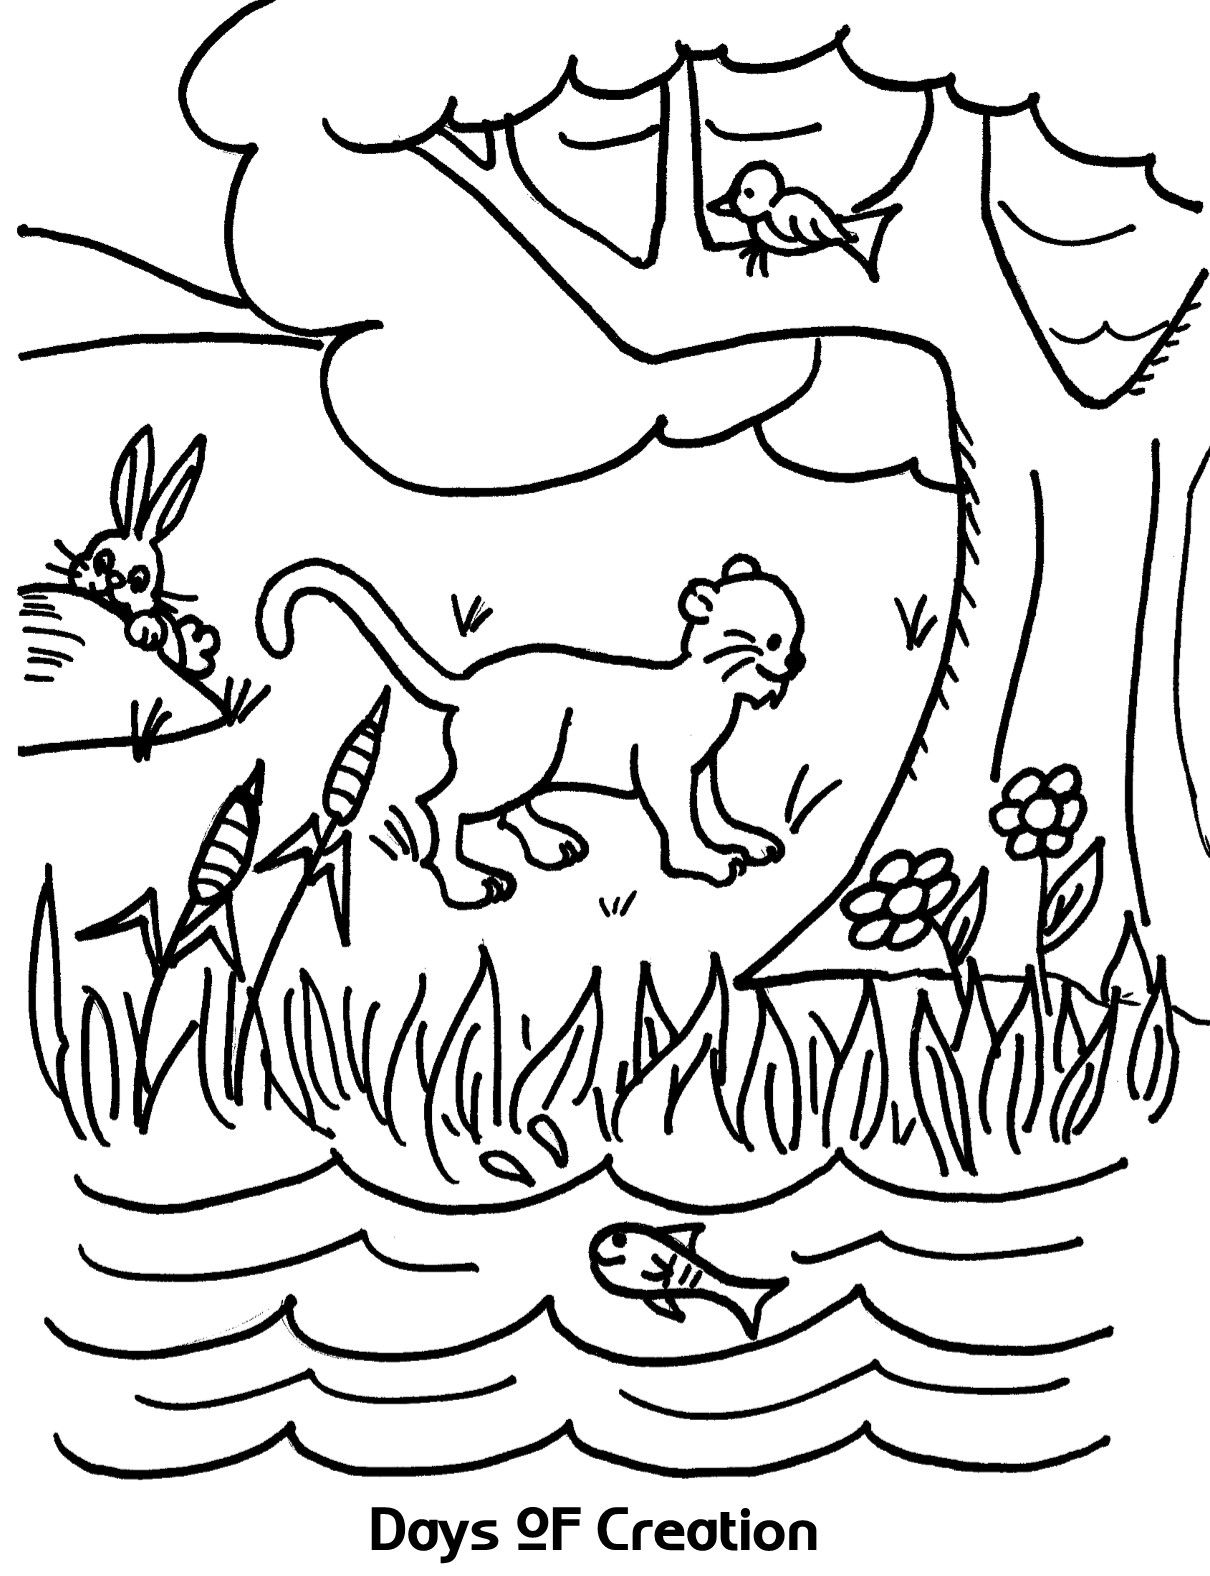 creation day 6 coloring page childrens church ideas pinterest